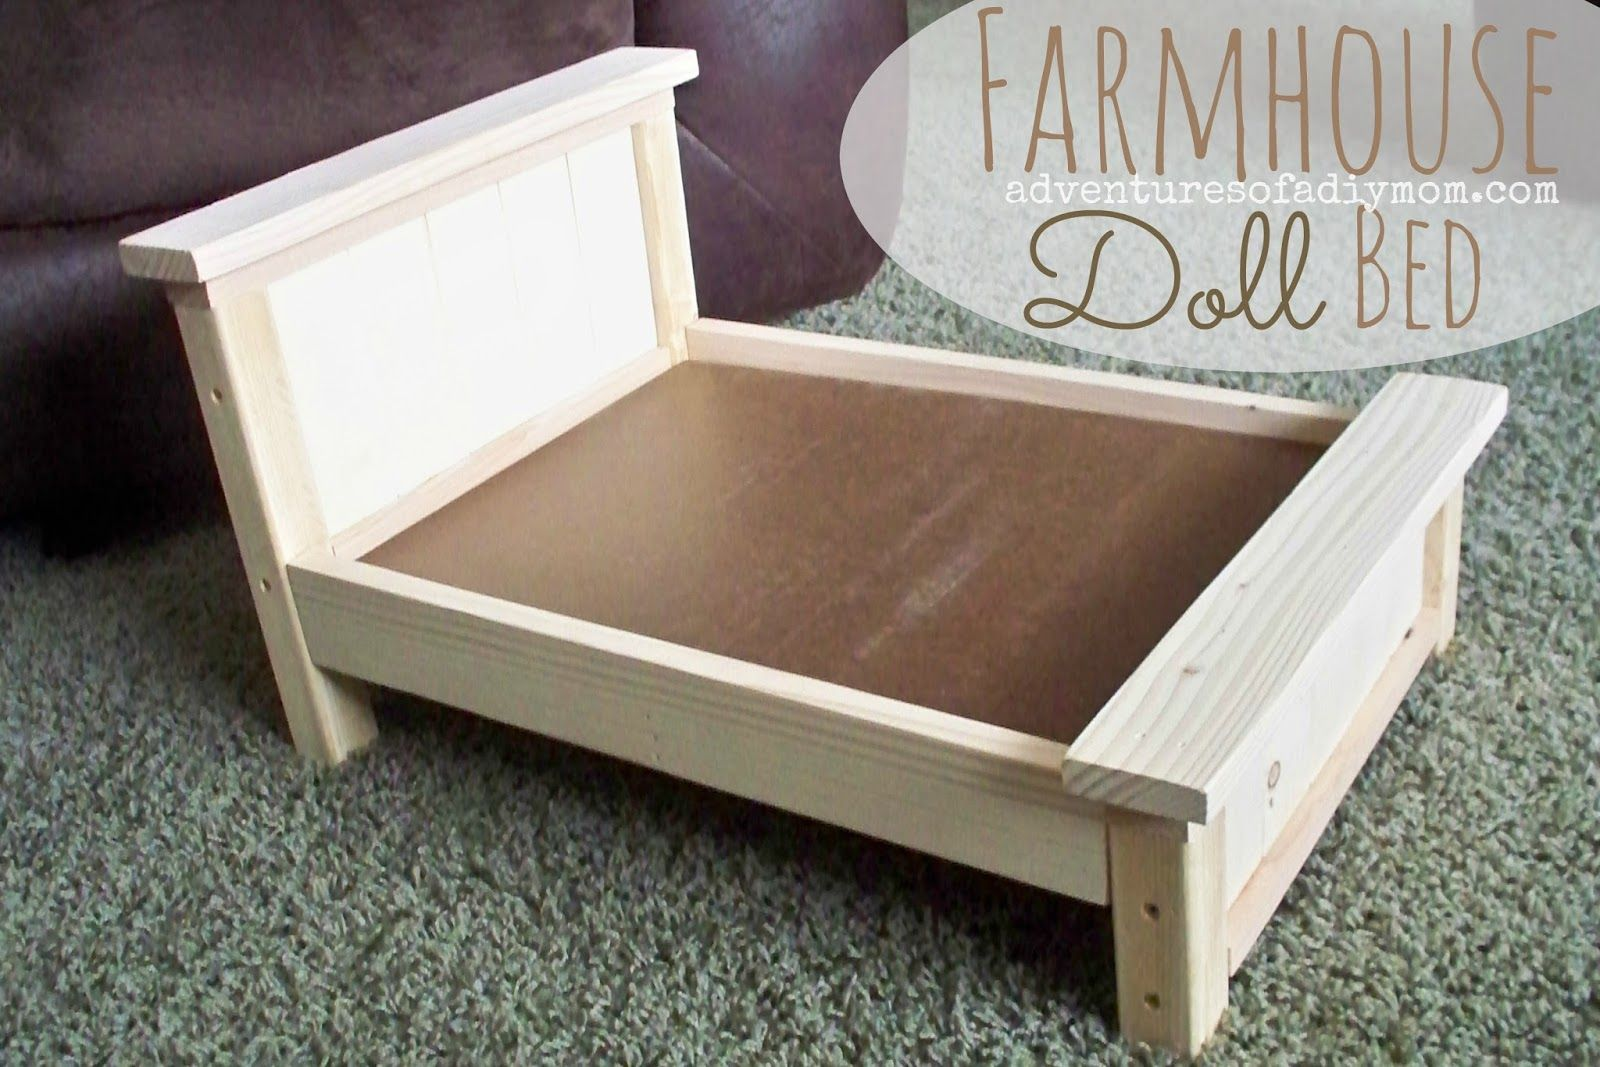 Diy Farmhouse Doll Bed For American Girl Dolls Doll Beds Girl Dolls And American Girls